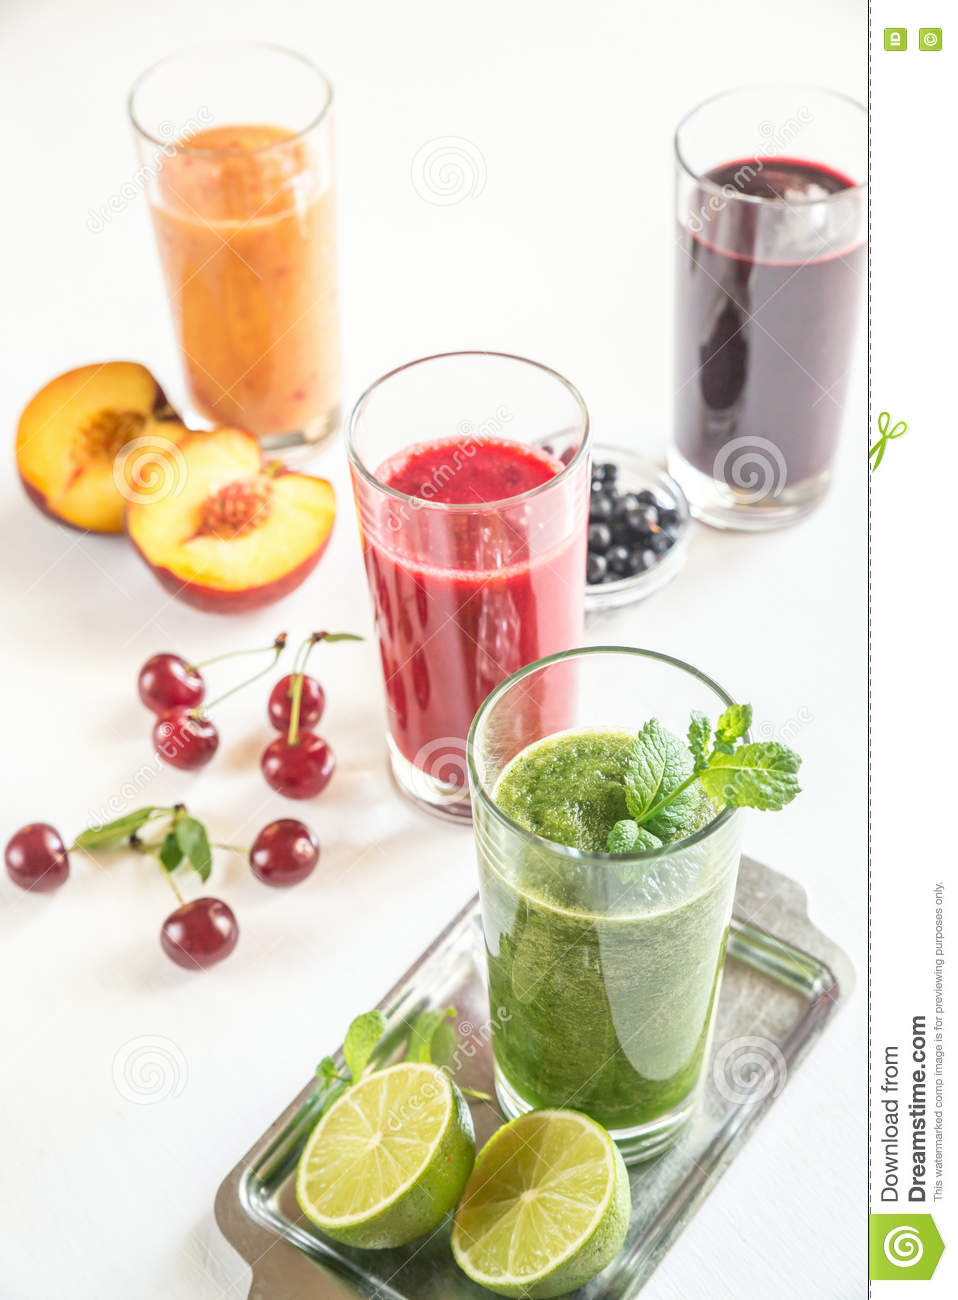 how to make a healthy vegetable smoothie